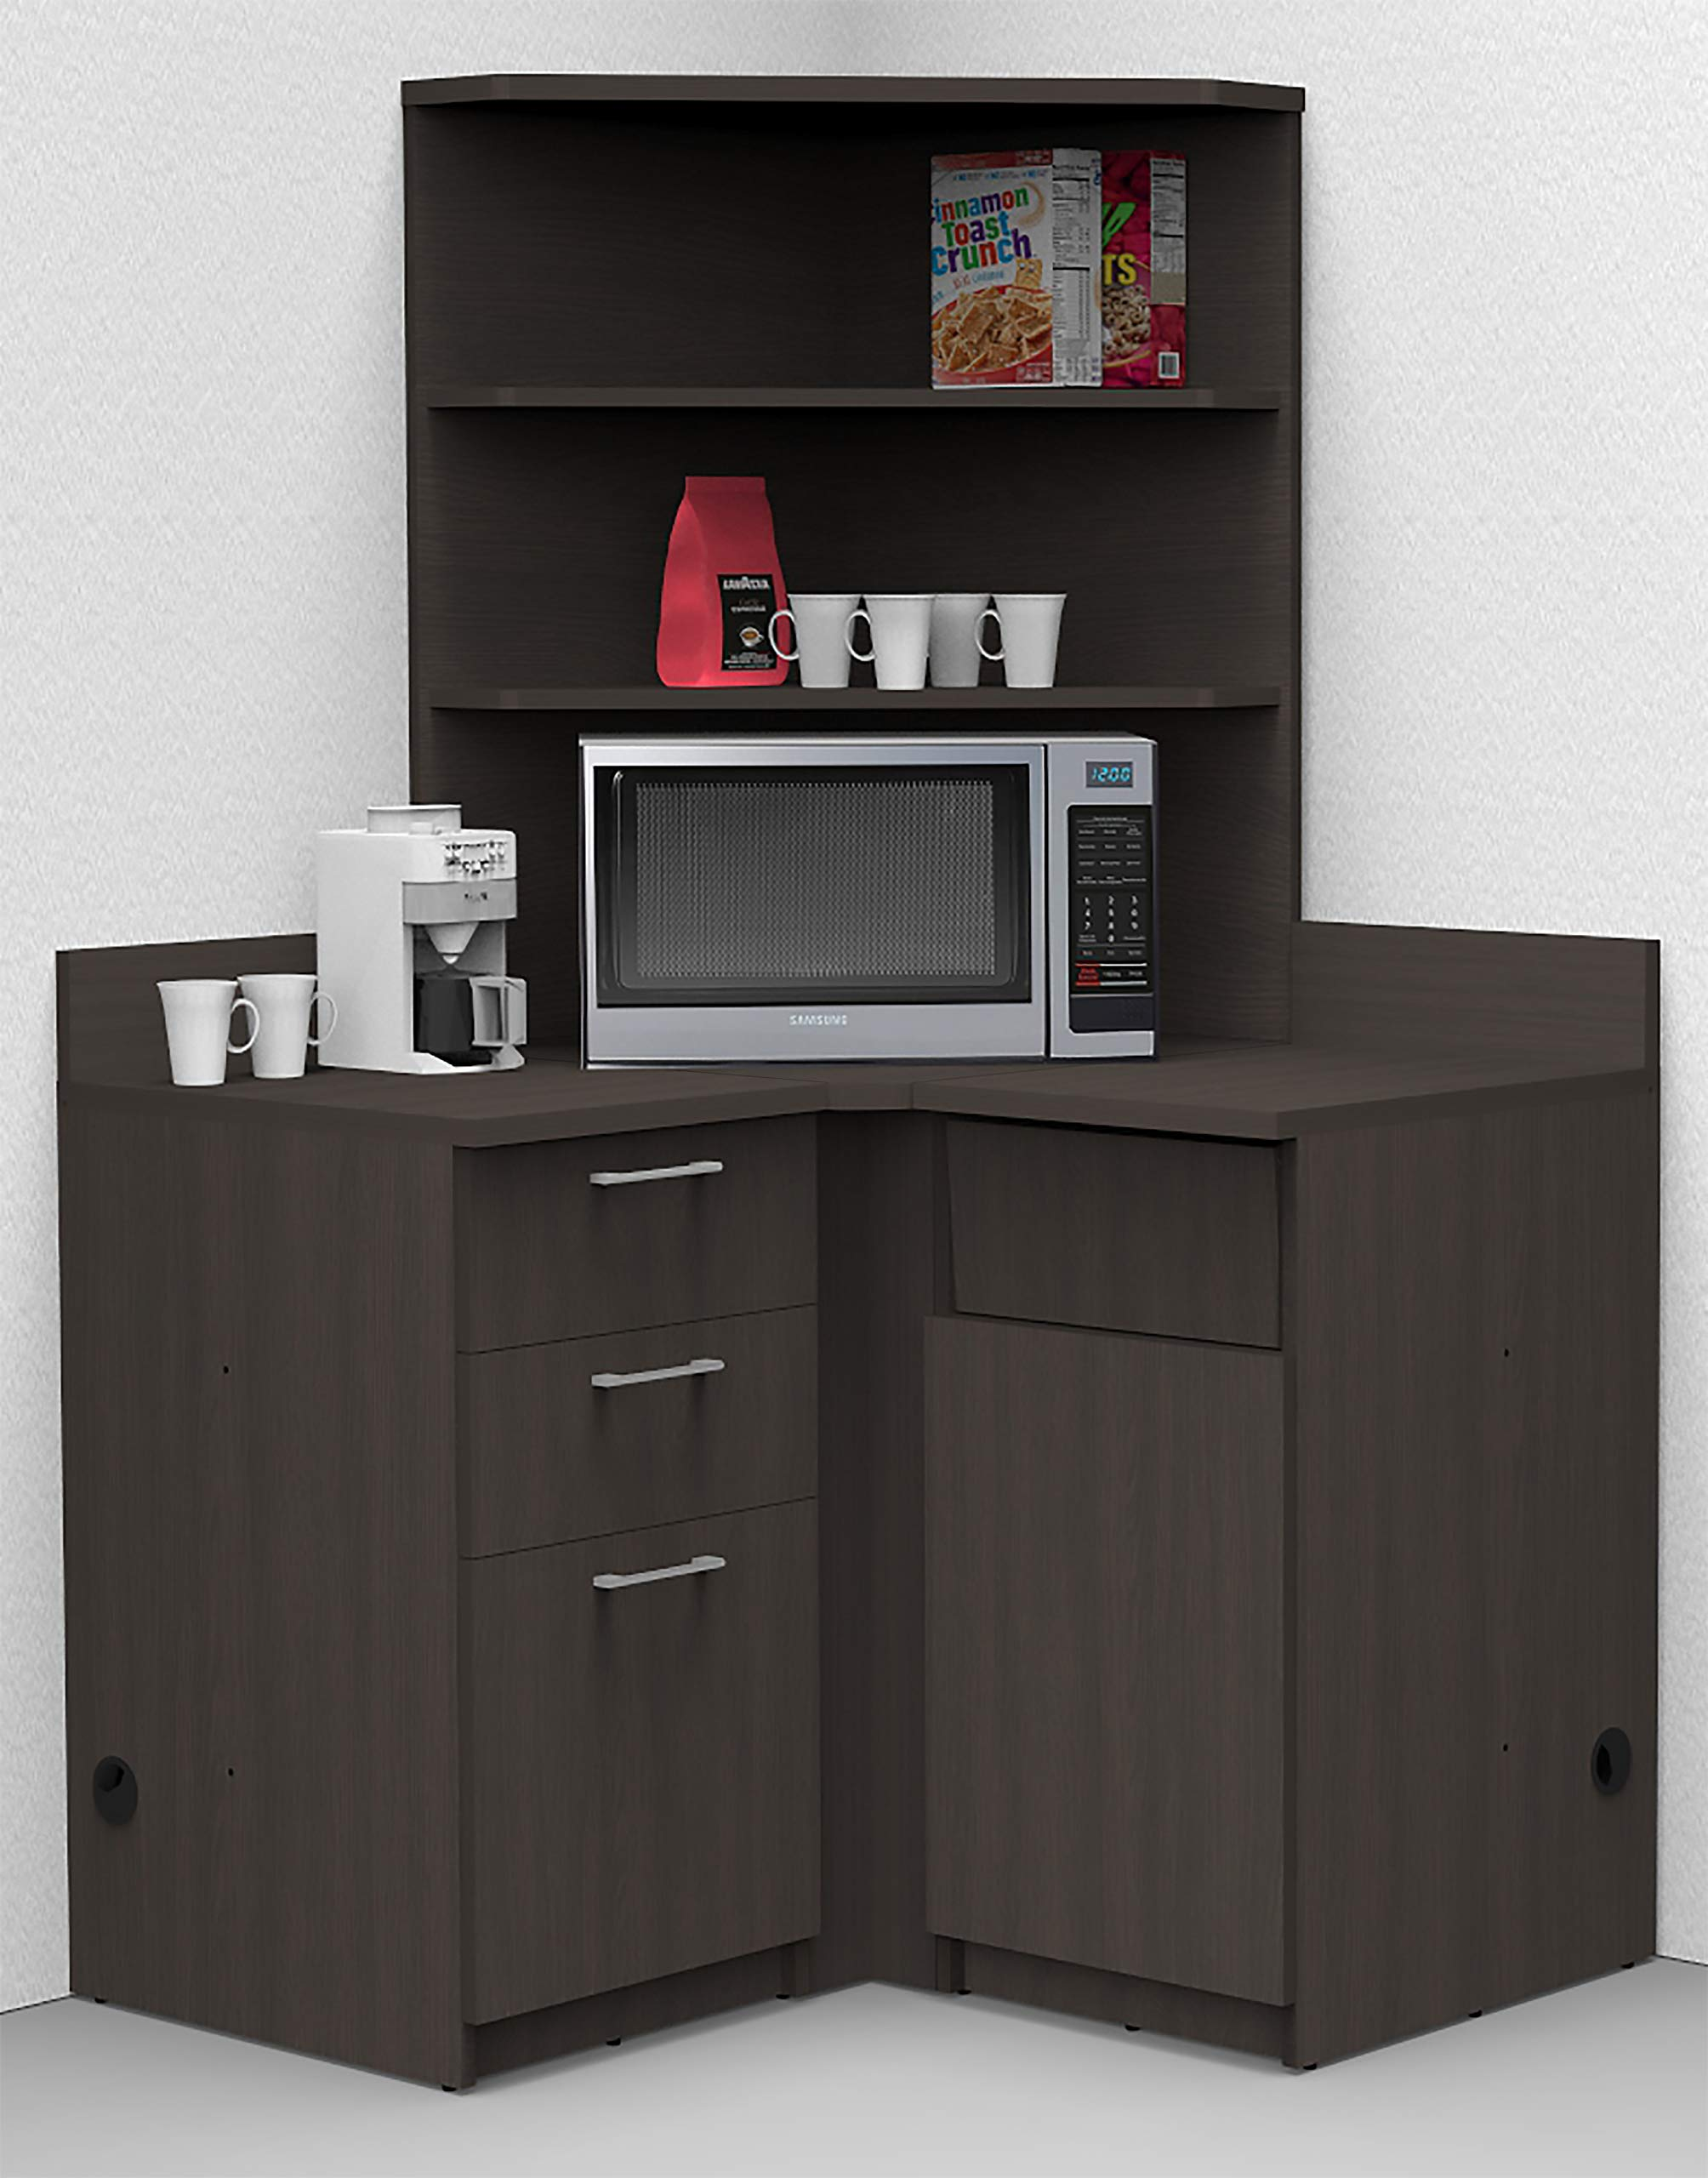 Coffee Kitchen Lunch Break Room Corner Space Saver Model 5989 BREAKTIME 4 Piece Color Espresso - Fully Factory Assembled. Purchase is Furniture Items ONLY by Breaktime